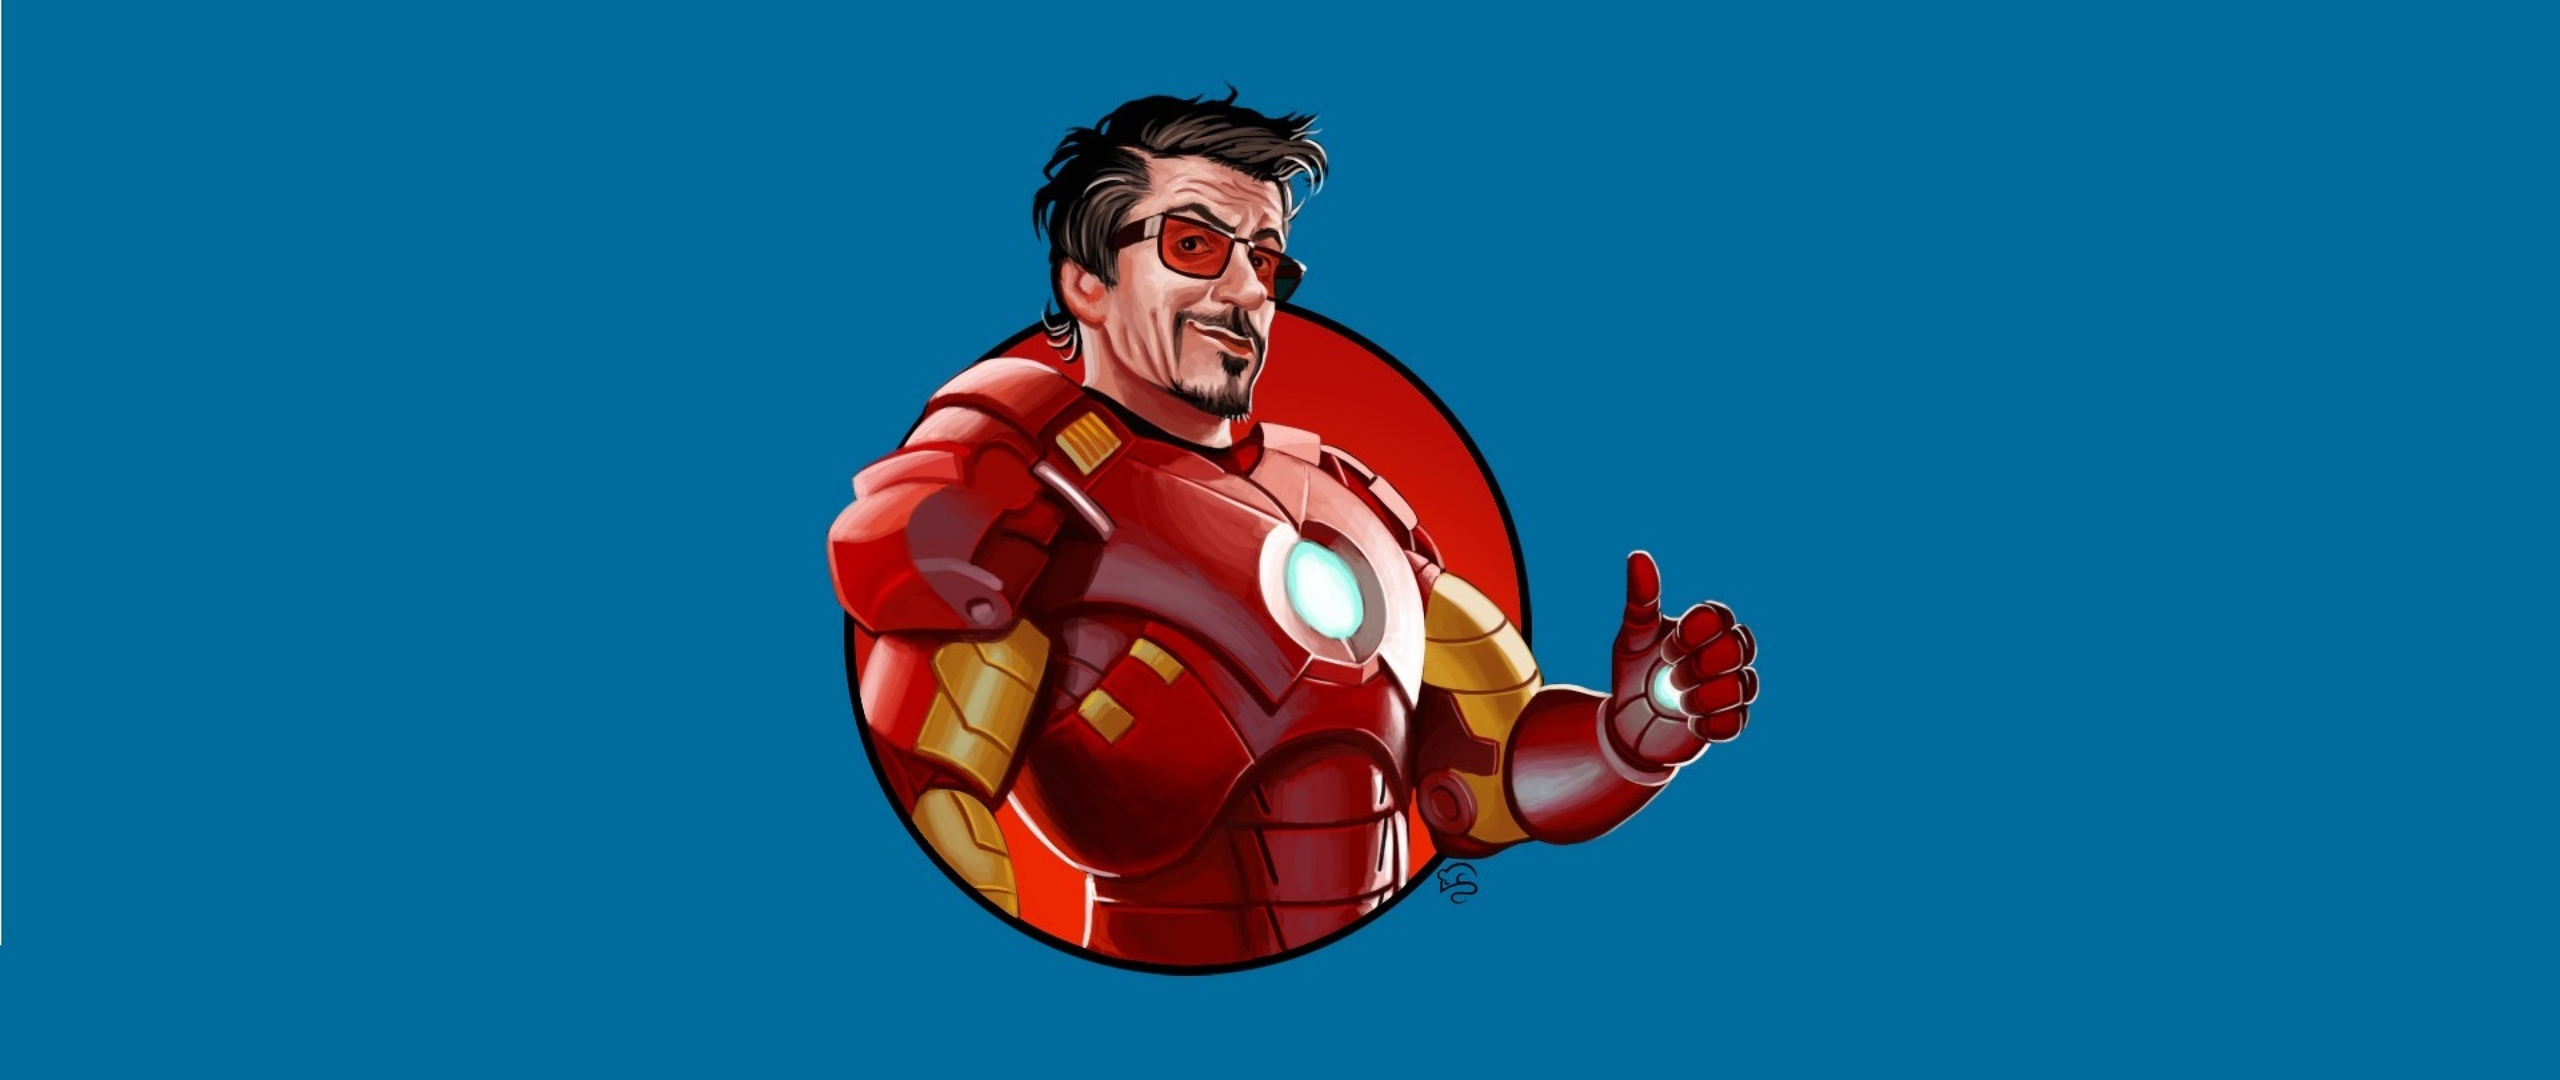 iron-man-fan-art.jpg